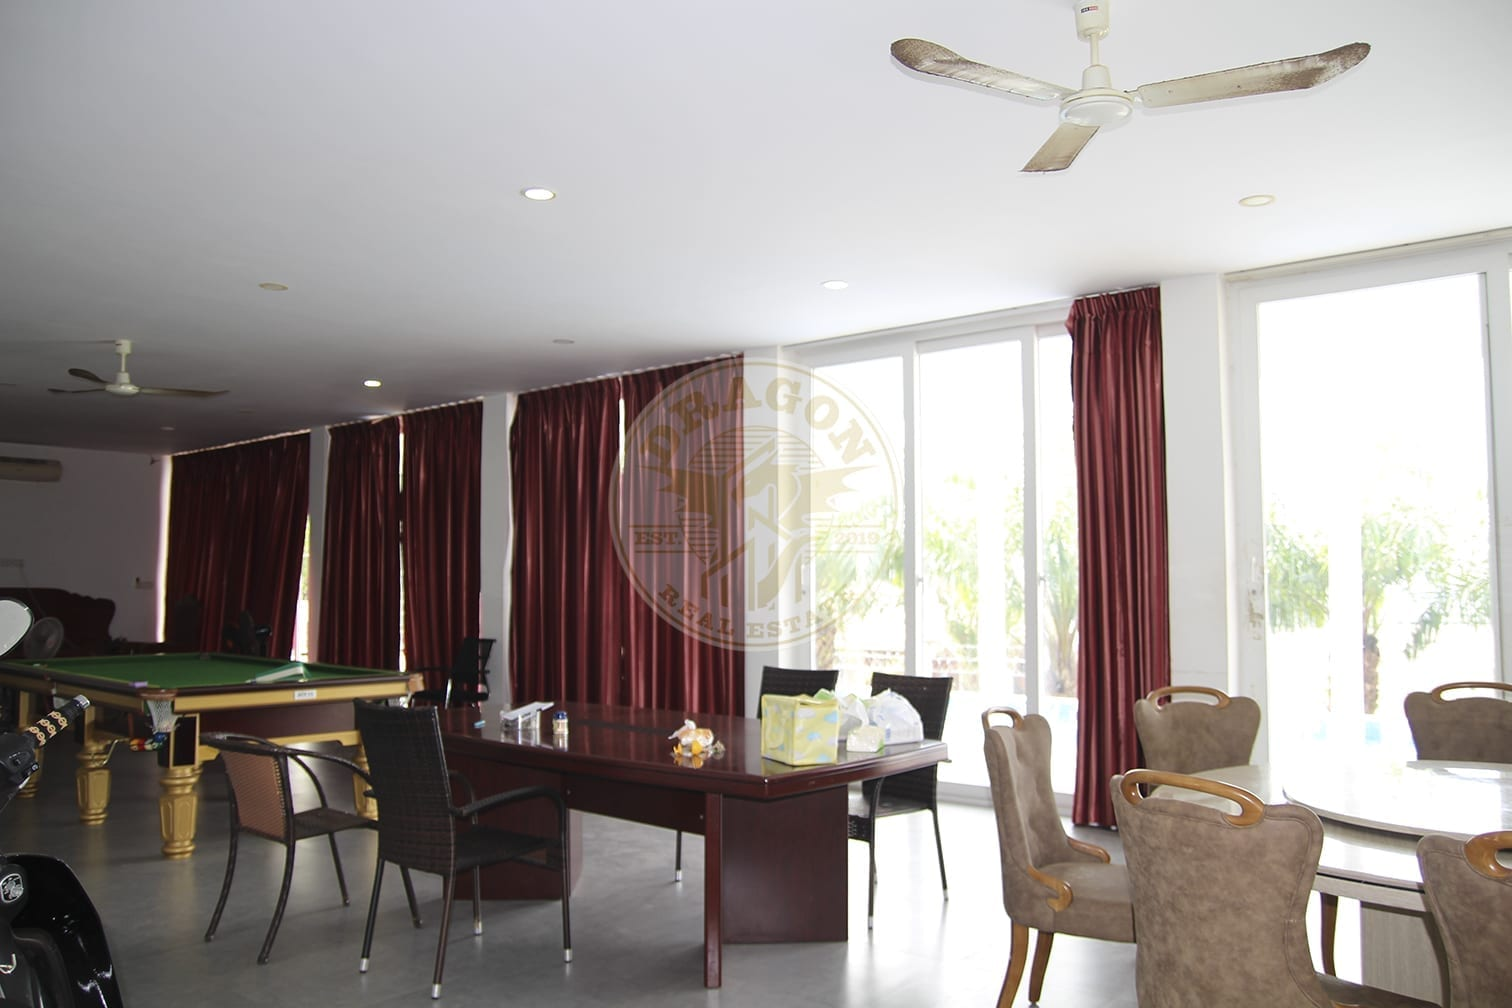 Villa with 6 Bedrooms and Bathroom. Sihanoukville Property